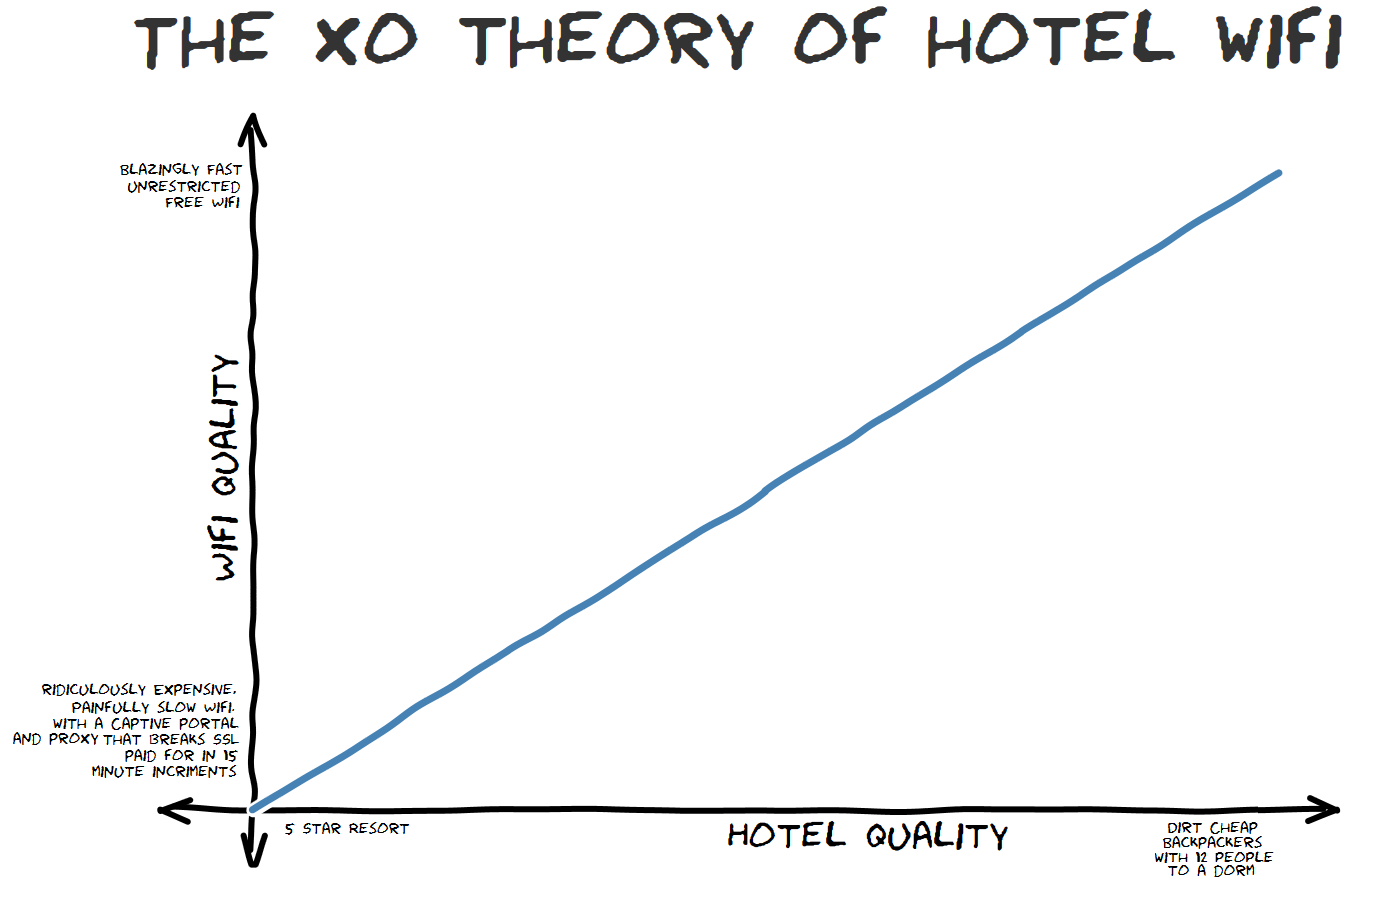 The xo theory of hotel WiFi